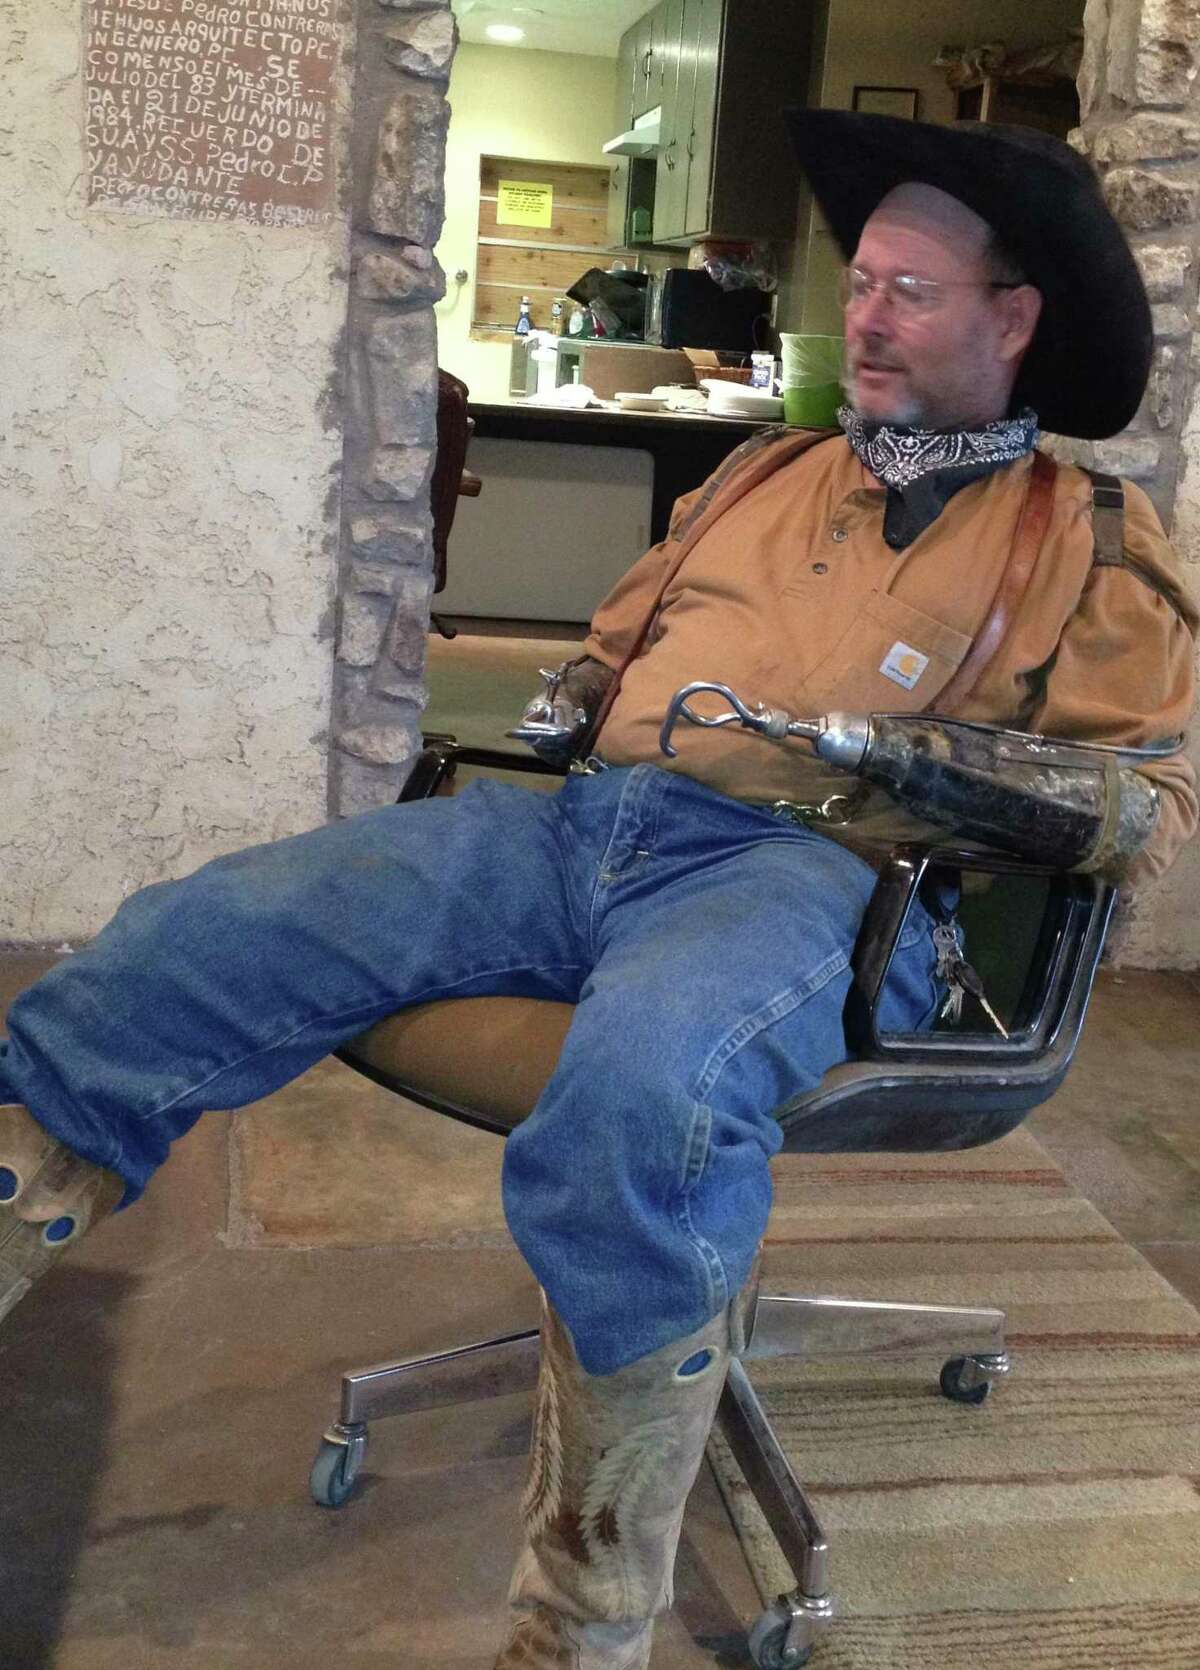 Charlie Bowers of Knickerbocker is a real Texas cowboy, despite losing both hands in an electrical accident.